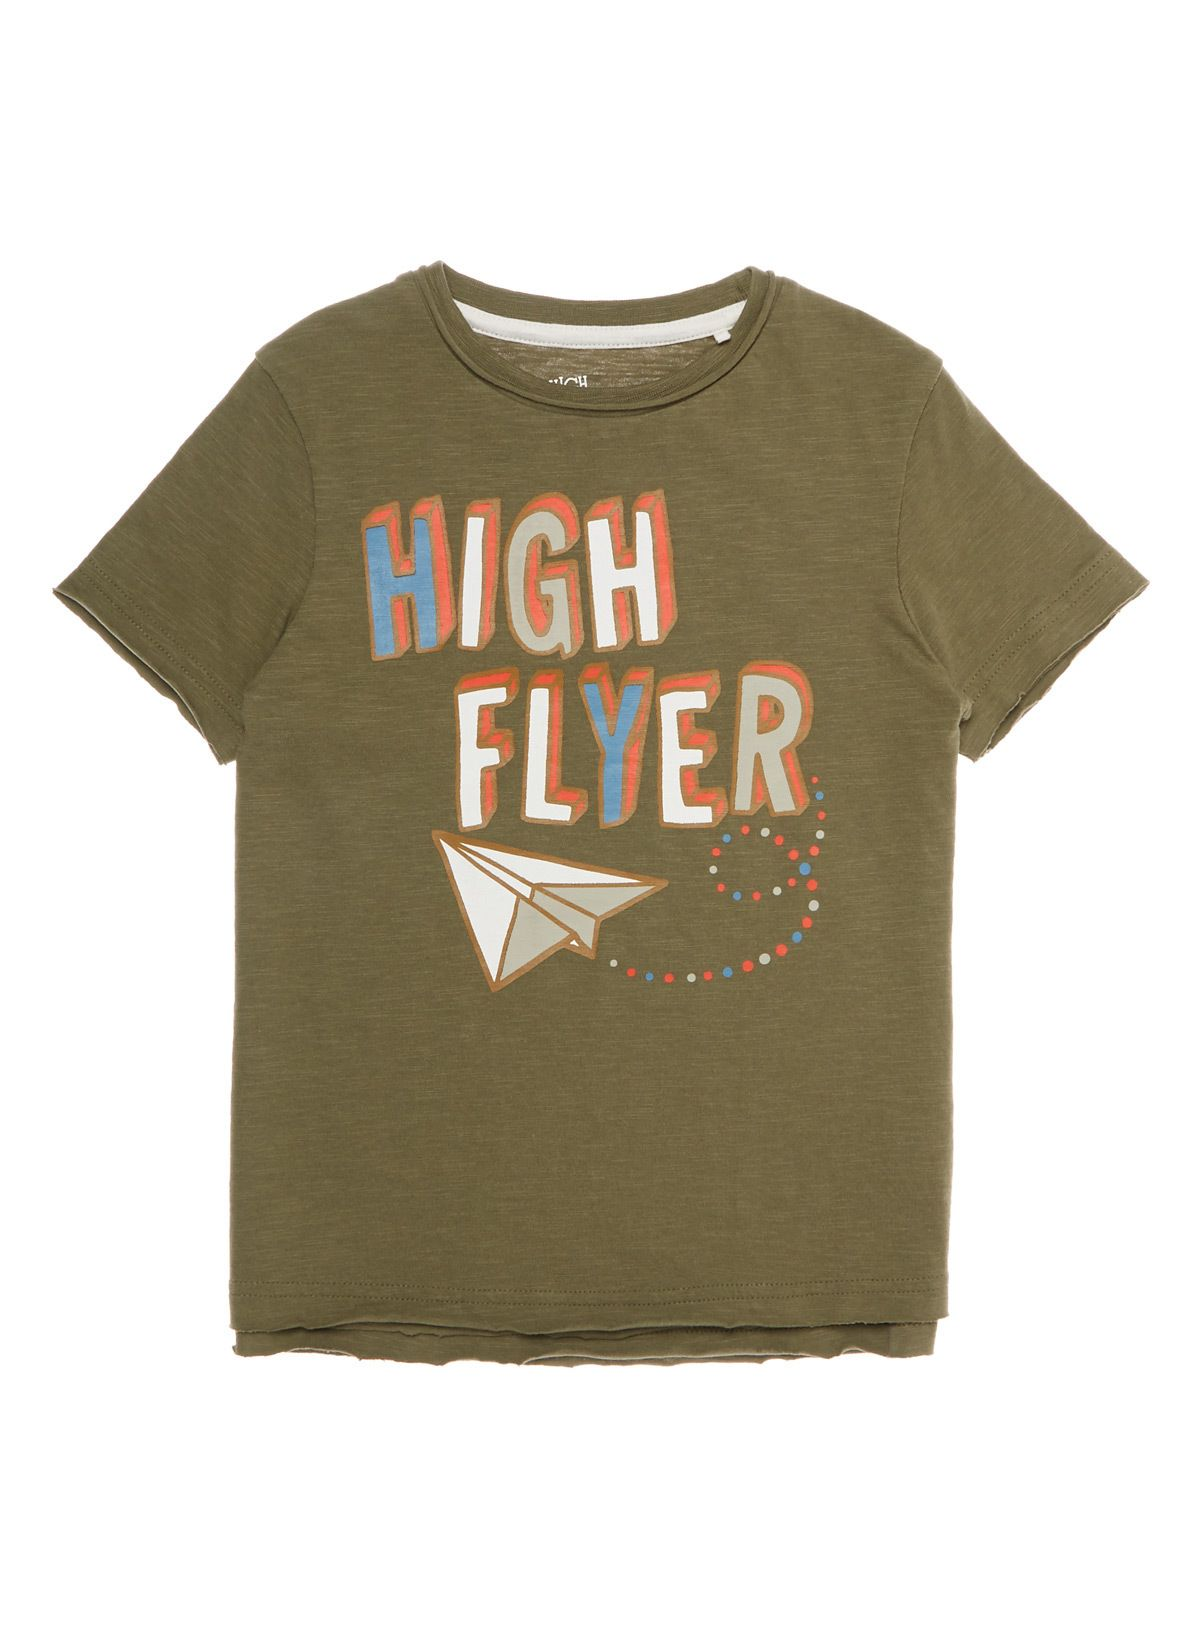 All Boy's Clothing Khaki High Flyer Tee (9 months- 6 years) | Tu clothing